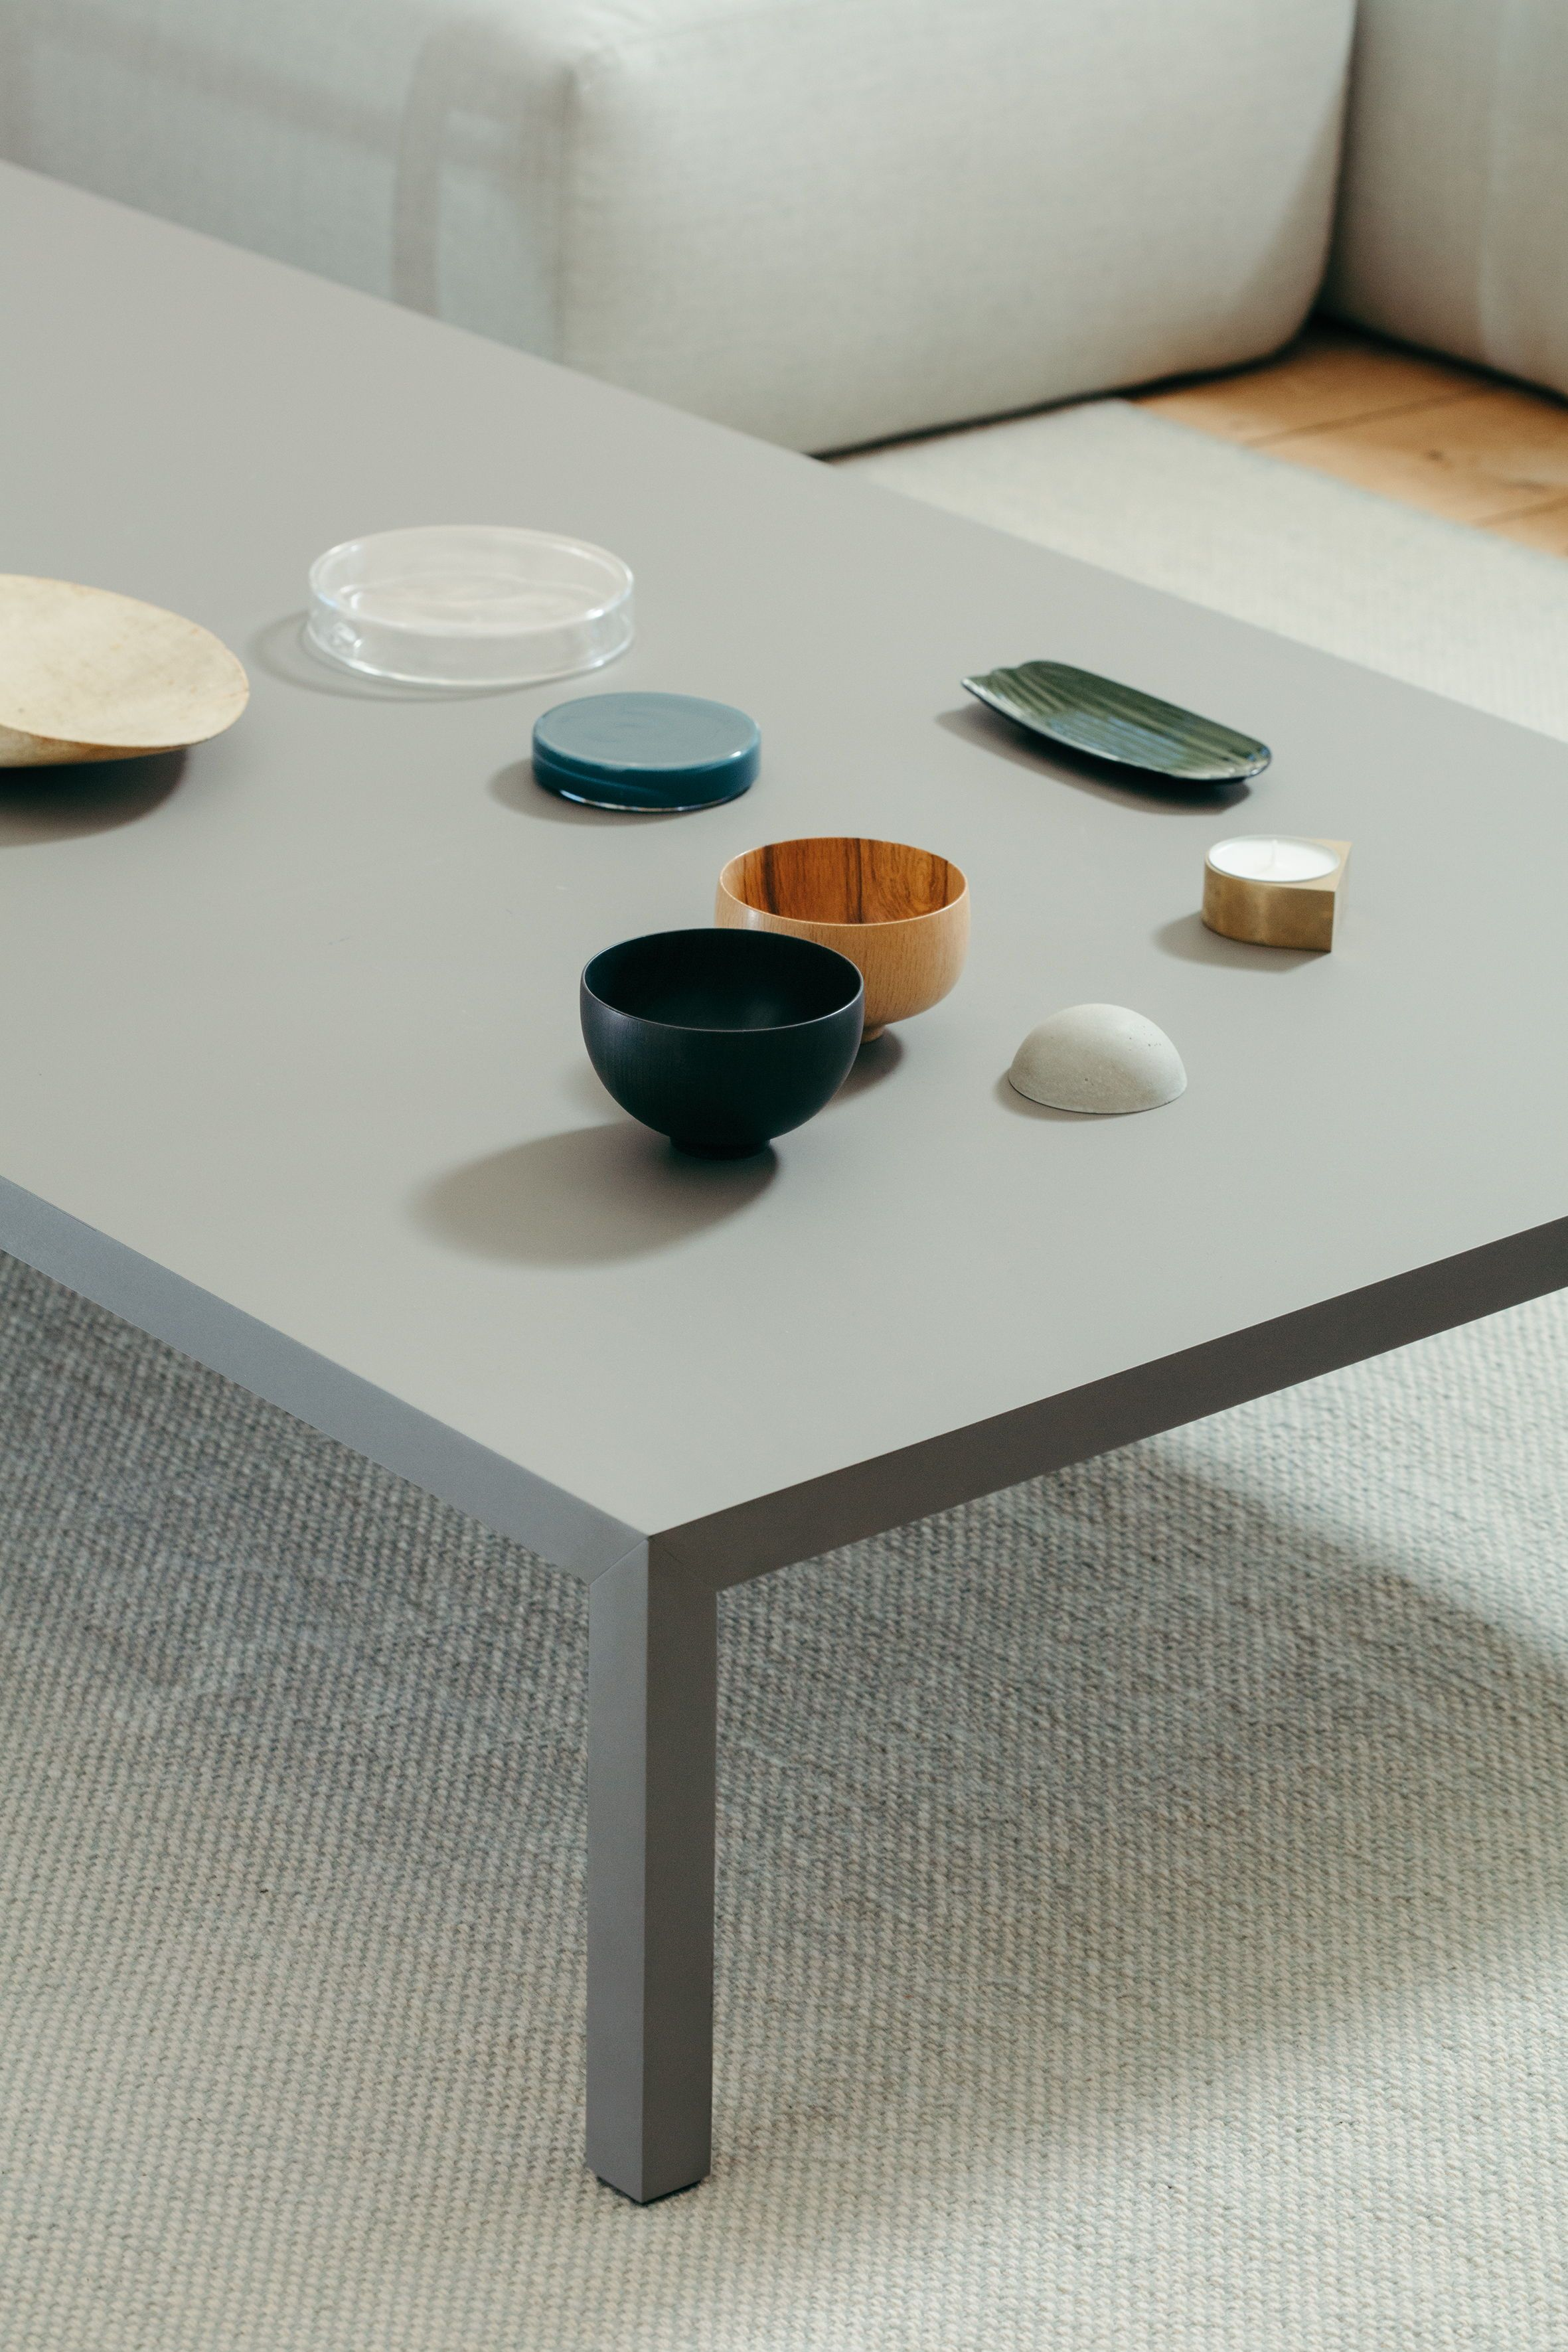 Timeless Coffee Table For Unique Living Room The Tense Table Collection Is Available In 12 Different Finishes Ph Mattia Balsam Mdf Italia Table Table Design [ 3543 x 2362 Pixel ]